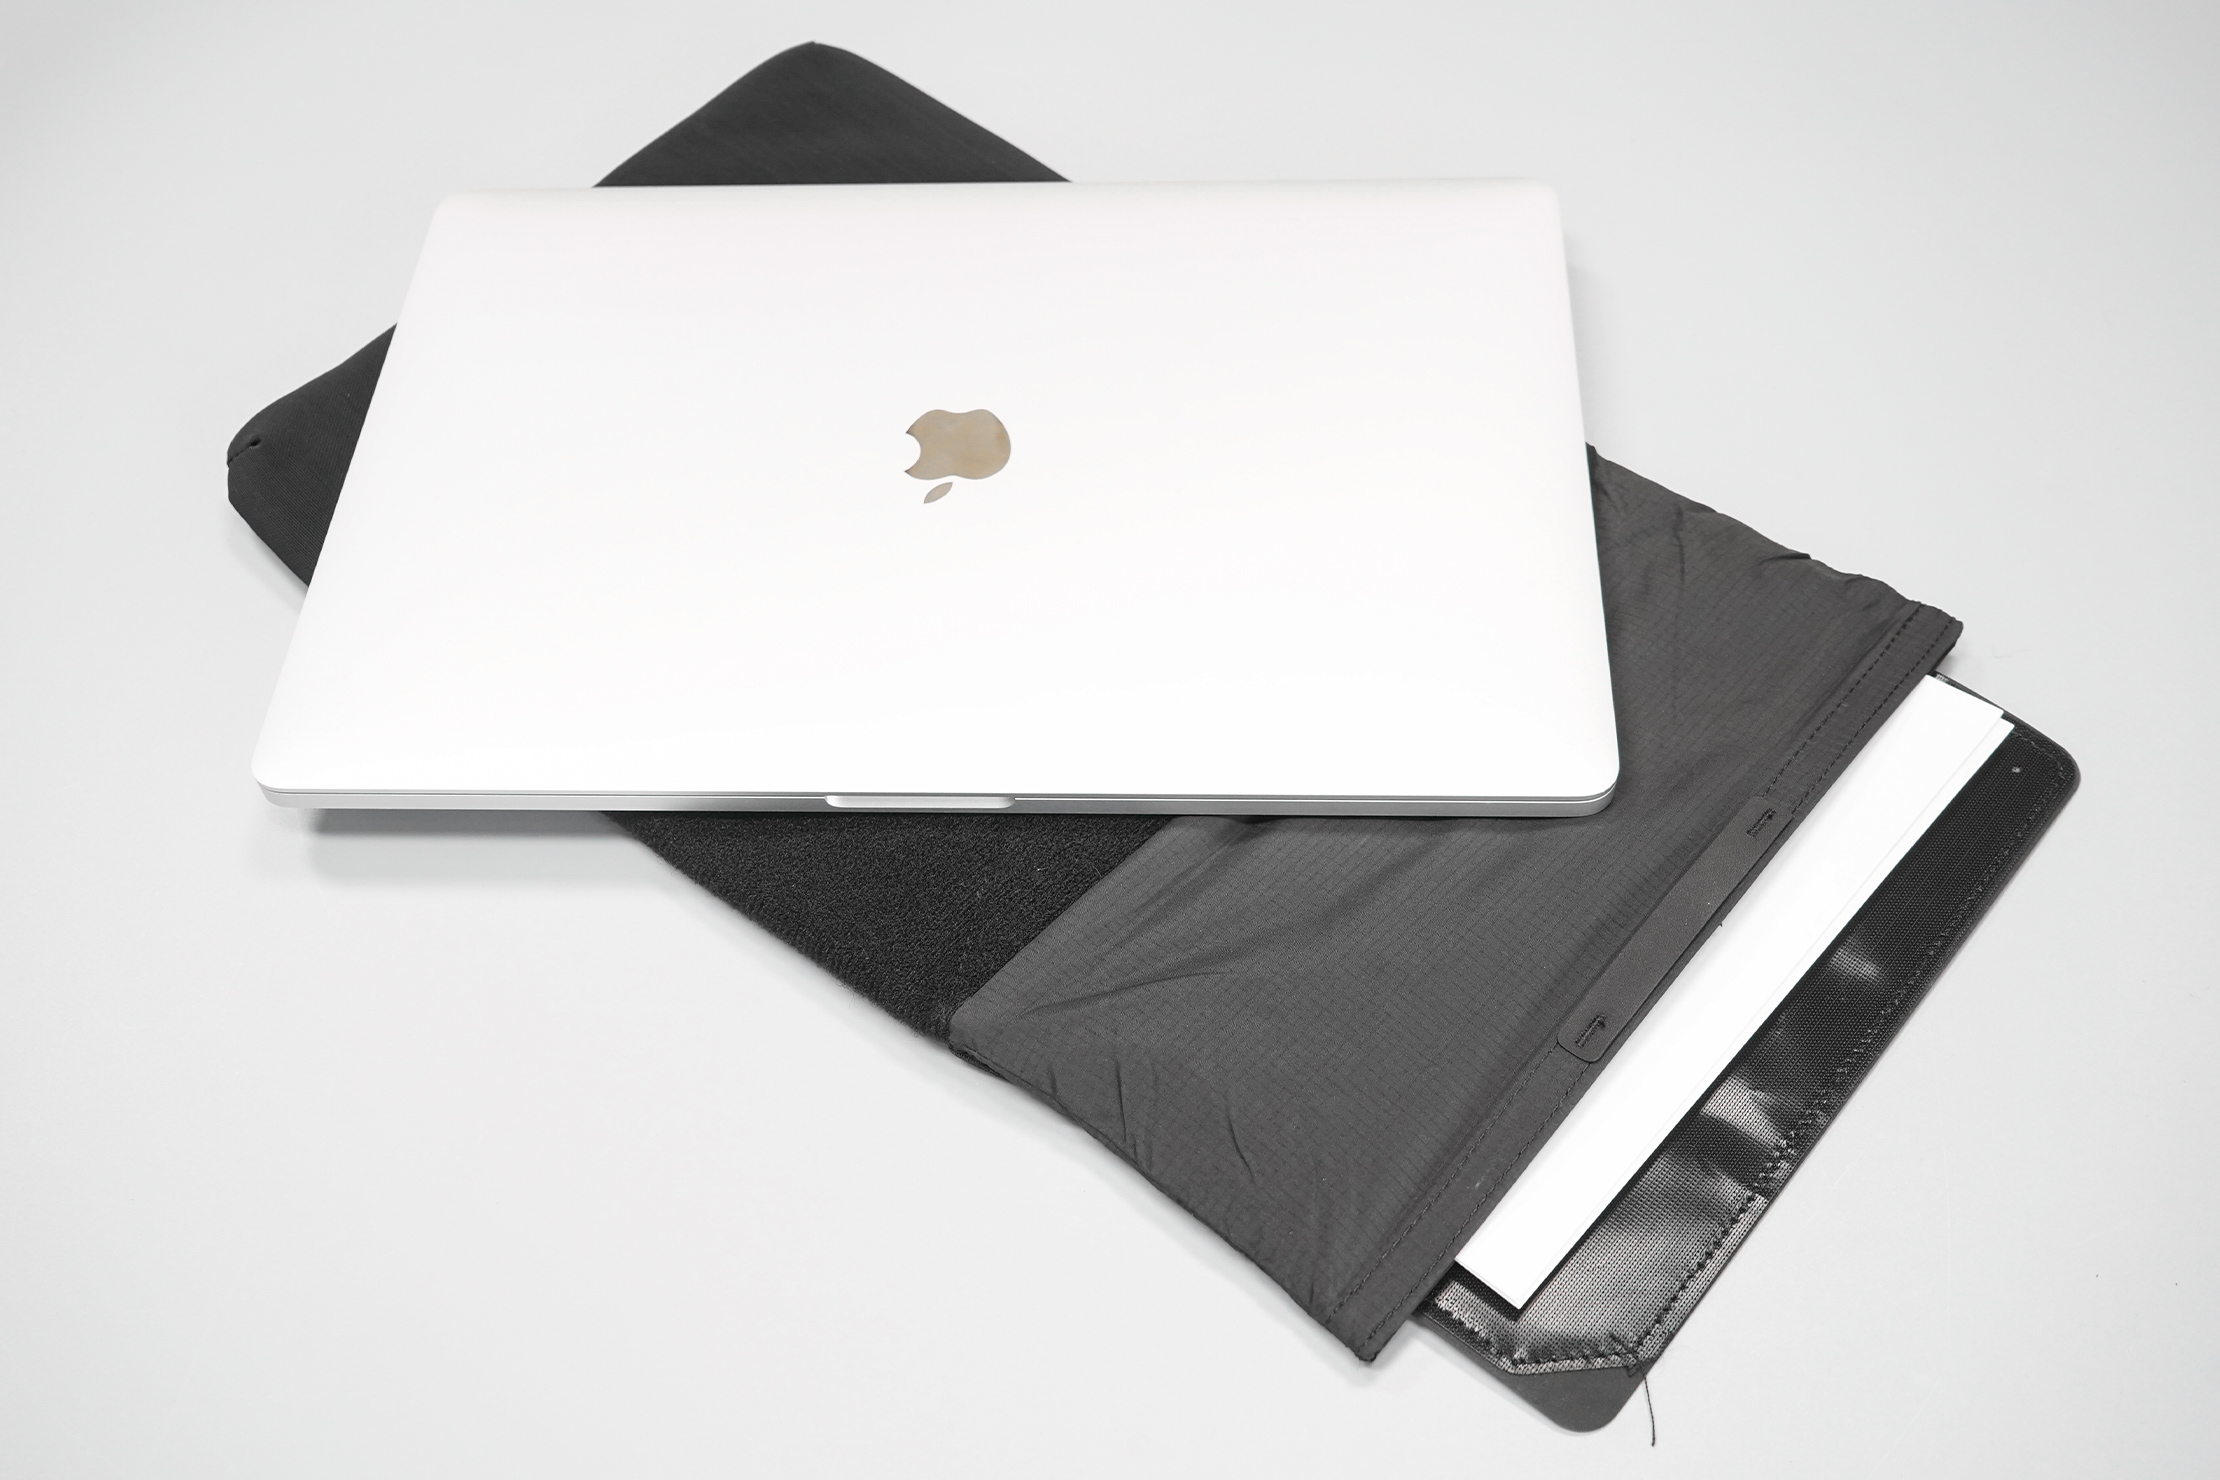 Matador Laptop Base Layer   The rolltop is adjustable to fit long items.